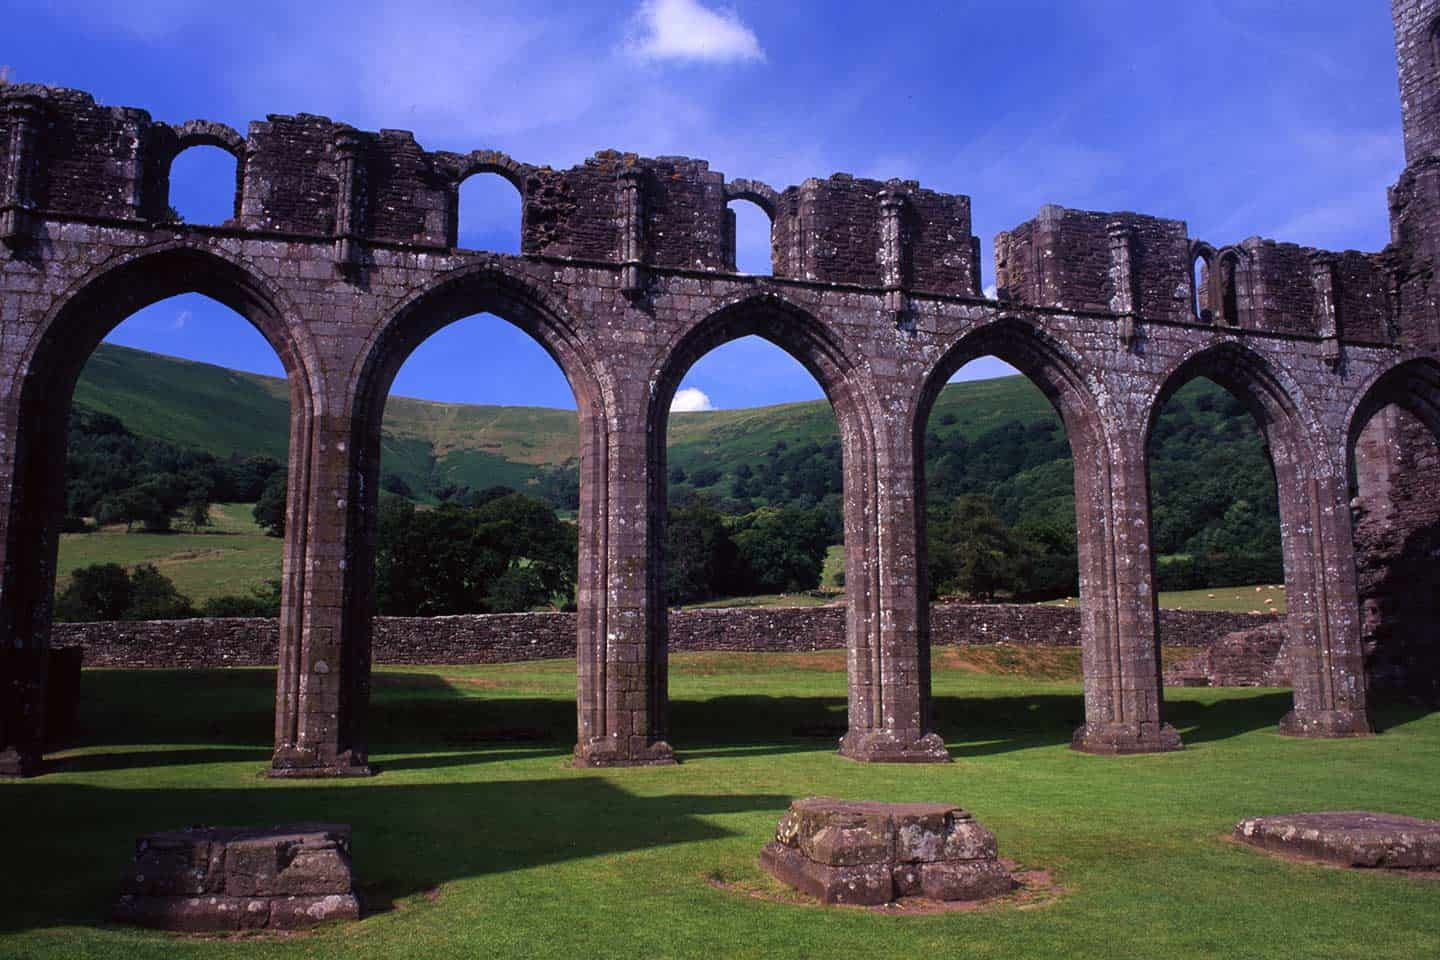 Image of the nave arches of Llanthony Priory, Wales